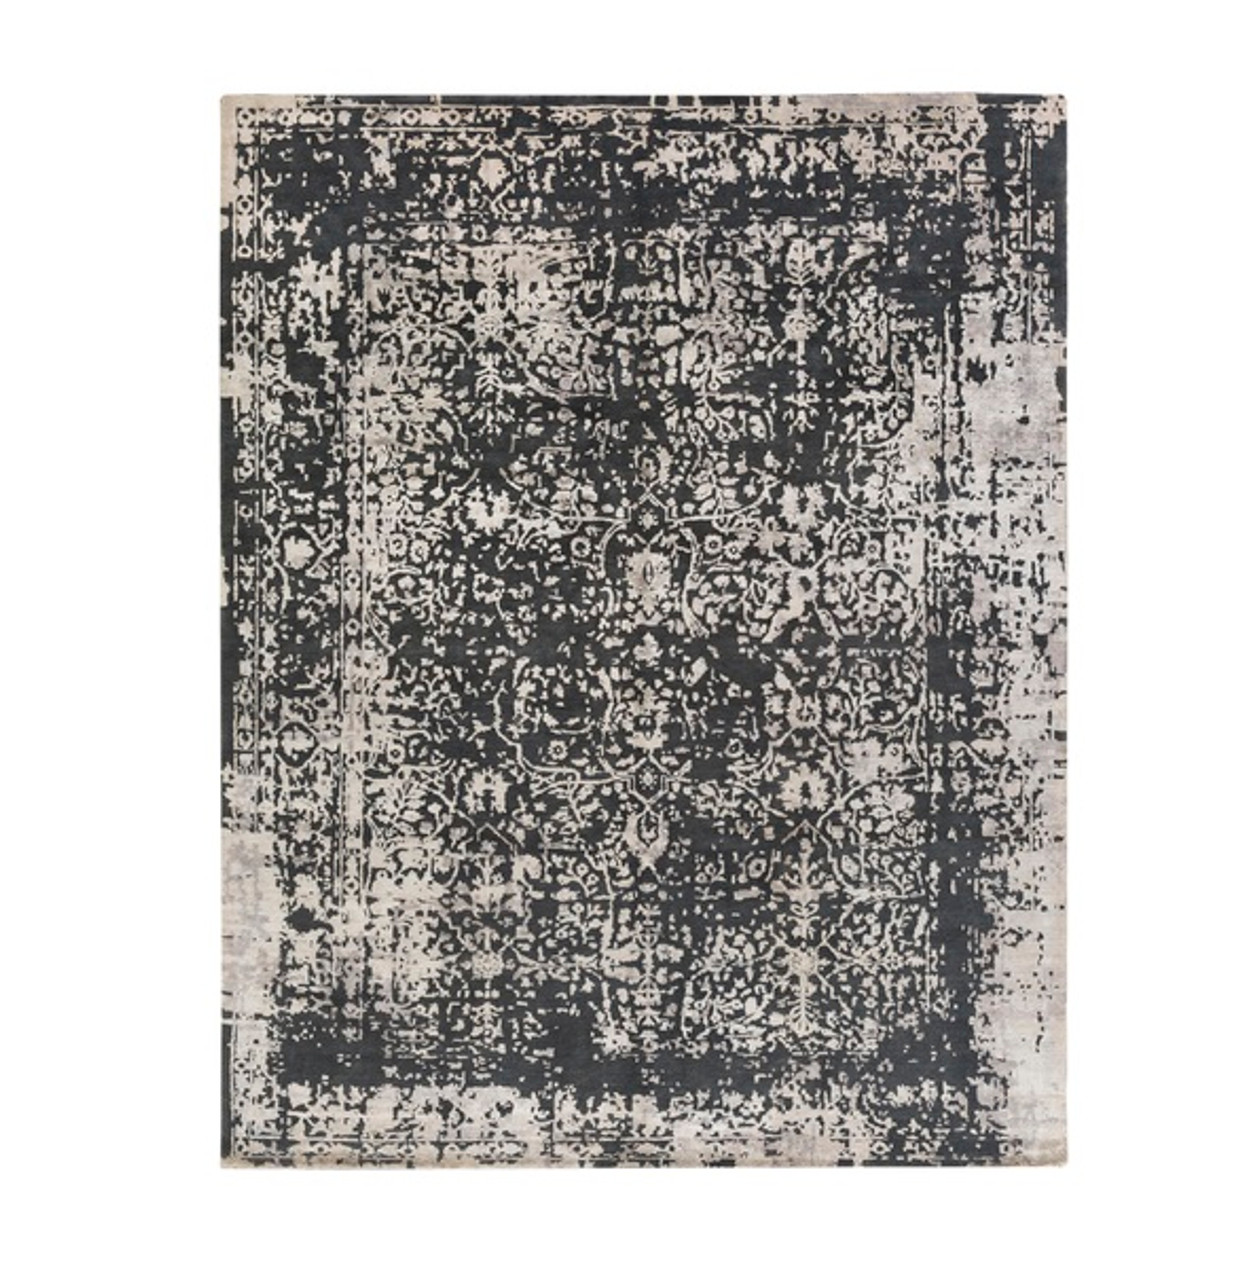 9 X 12 Enchanted Mystique Smoky Black Ash Gray Hand Knotted Area Throw Rug Christmas Central